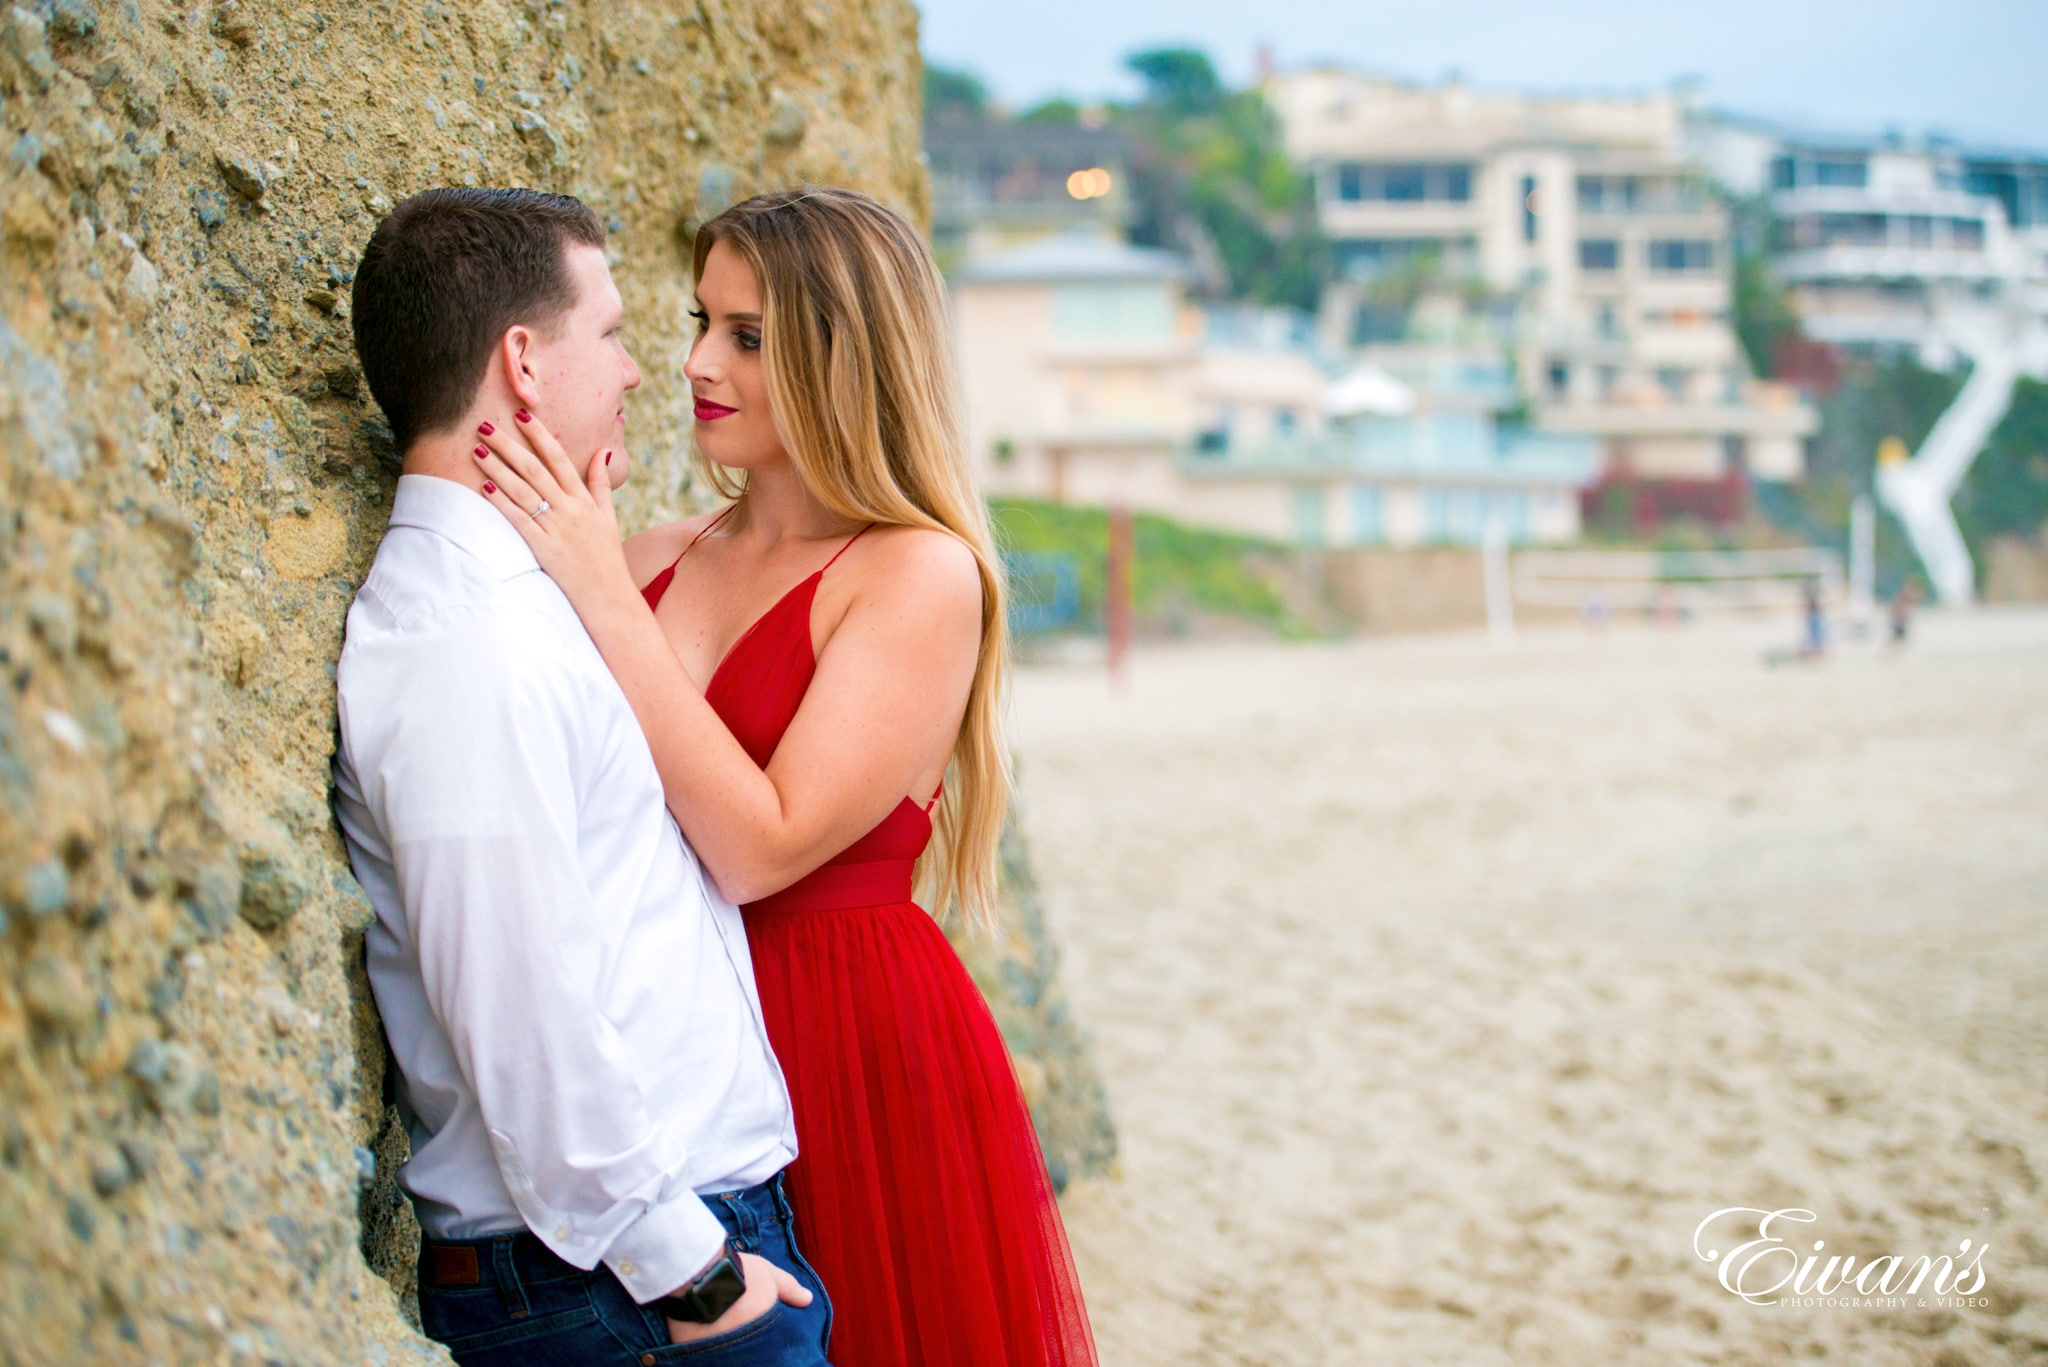 man and woman kissing beside brown rock during daytime